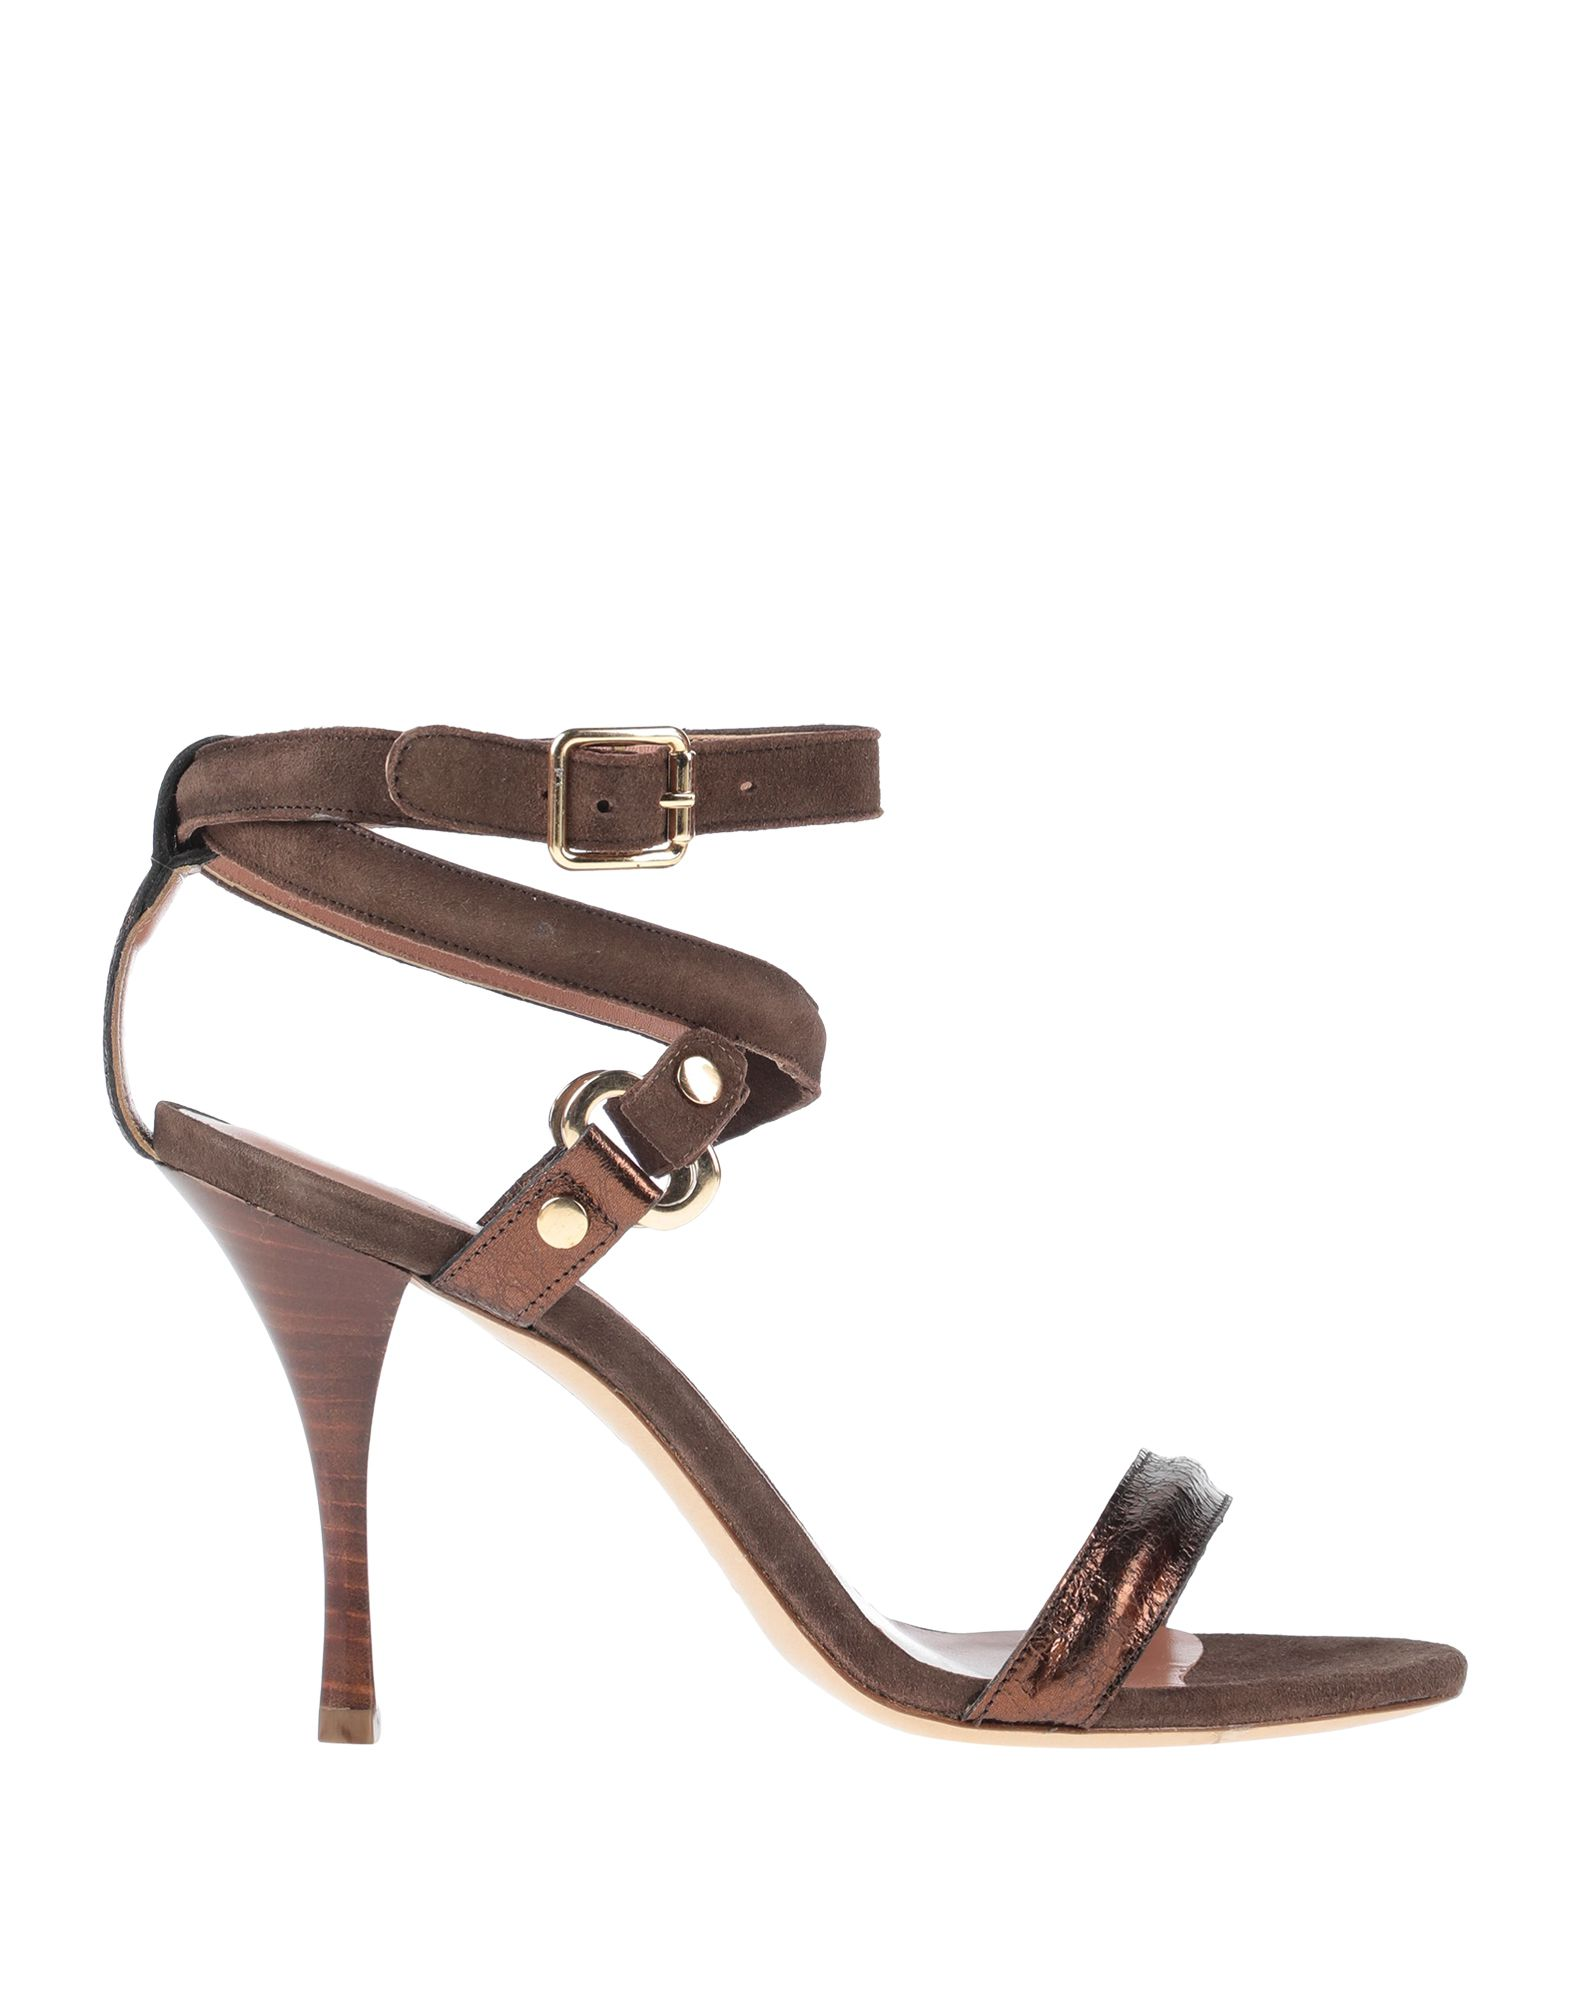 ELEVENTY Sandals. leather, laminated effect, metal applications, solid color, buckling ankle strap closure, round toeline, spool heel, leather lining, leather sole, contains non-textile parts of animal origin. Soft Leather